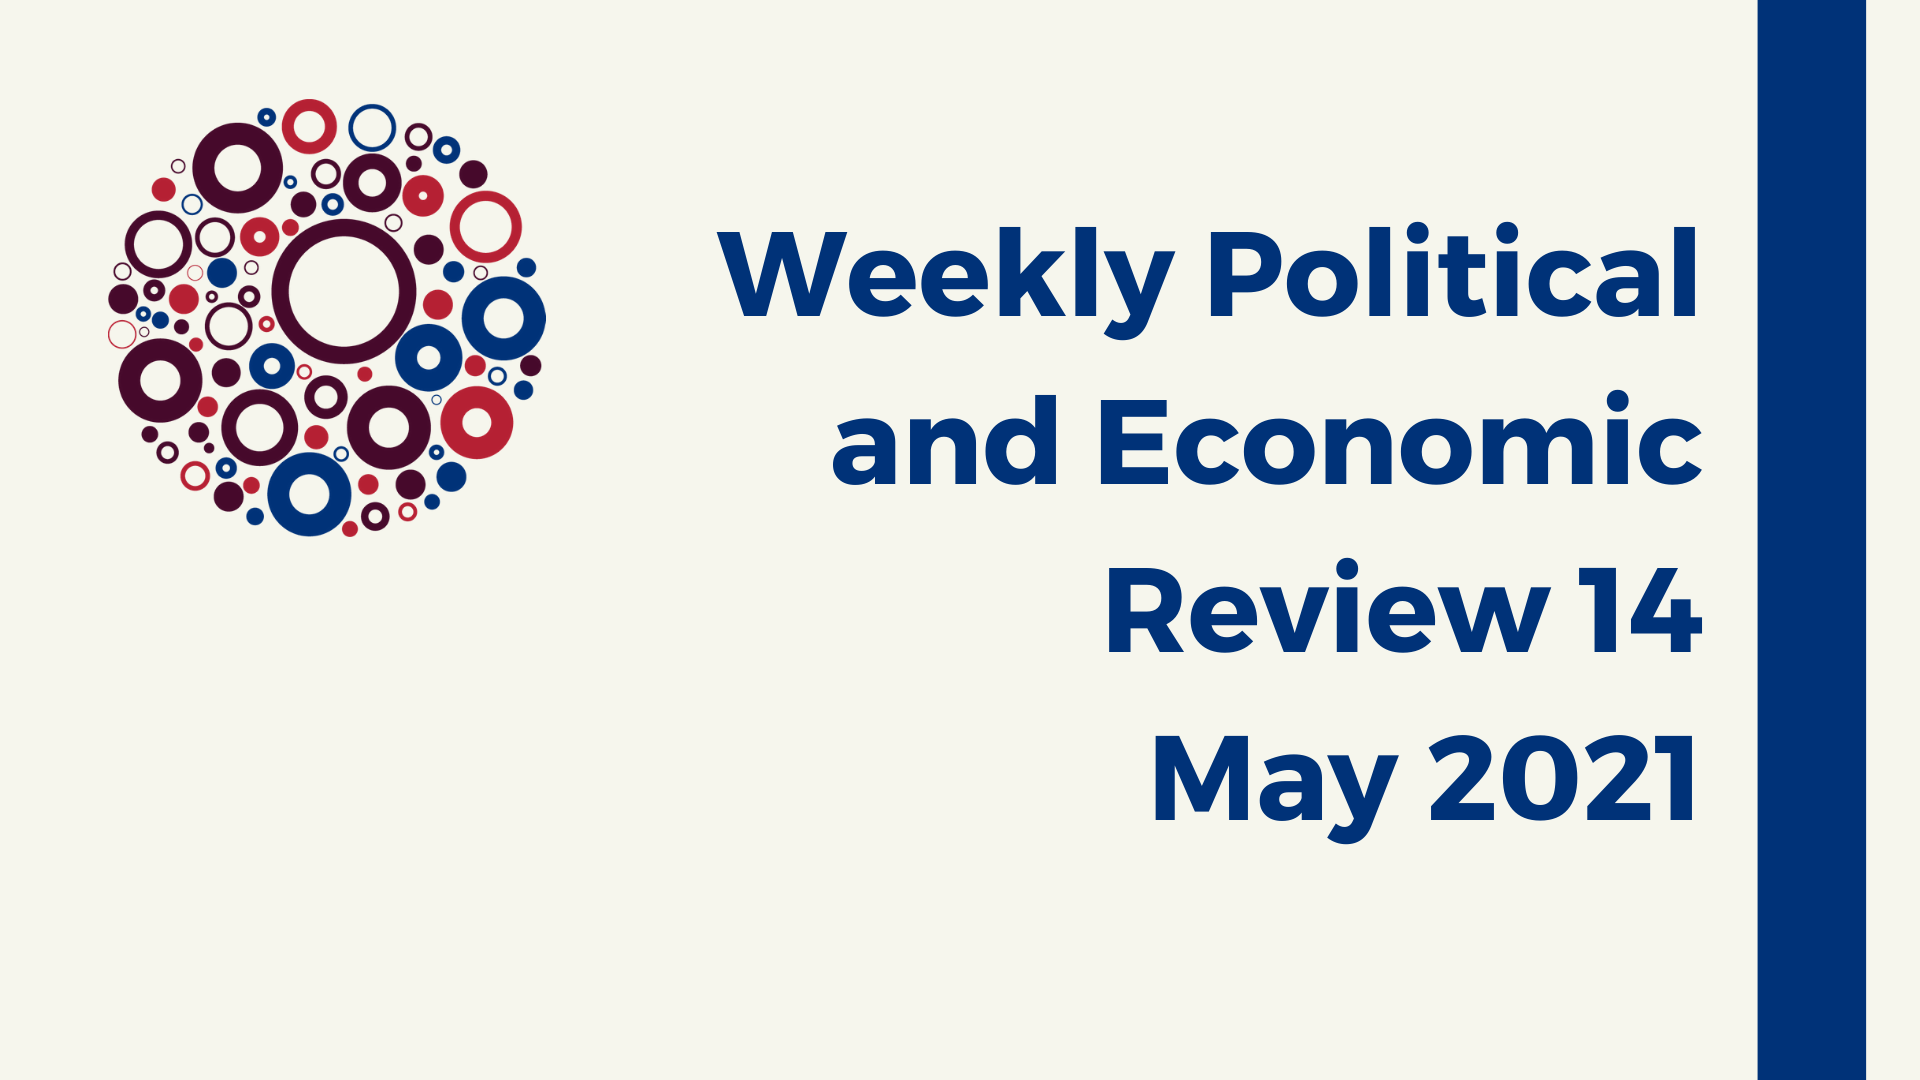 Weekly Political and Economic Review 14 May 2021